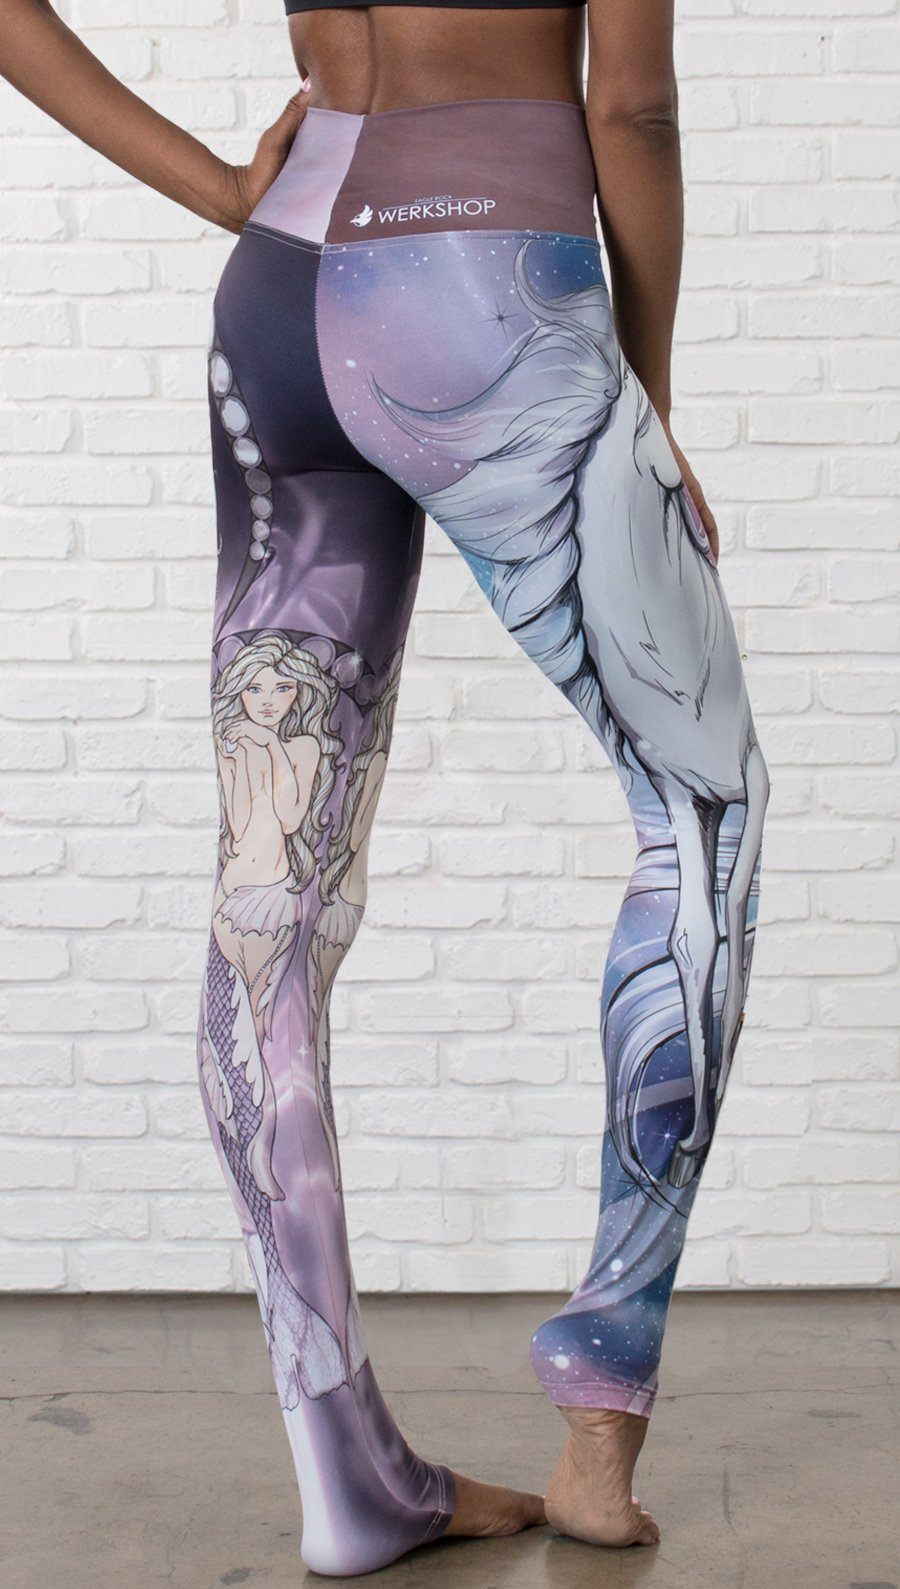 closeup front view of model wearing full length leggings with unicorn and mermaid mashup printed design